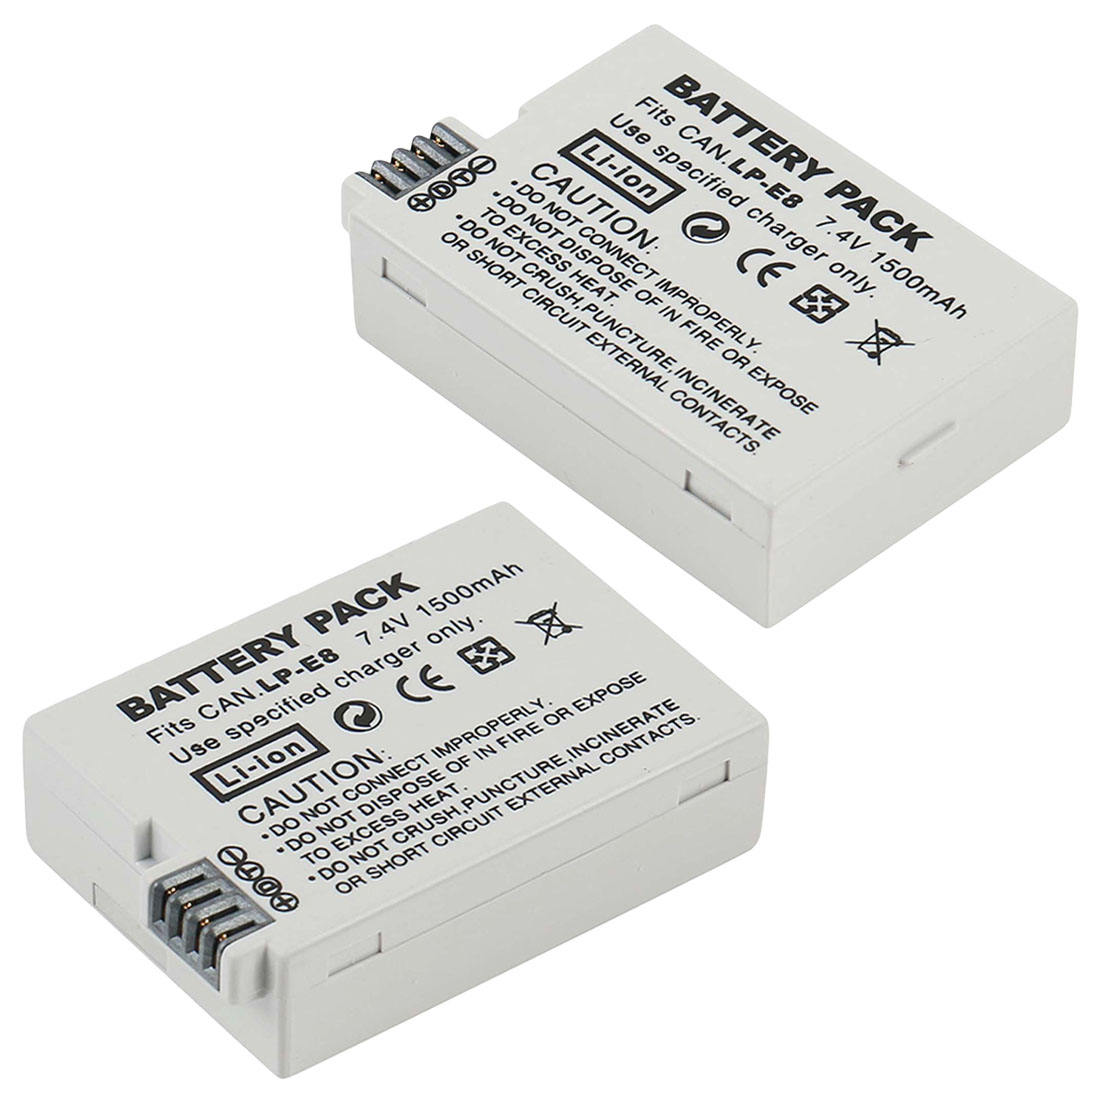 LP-E8 <font><b>Battery</b></font> Pack Bateria LP-E8 Lp E8 For <font><b>Canon</b></font> <font><b>550D</b></font> 600D 650D 700D X4 X5 X6i X7i T2i T3i T4i T5i DSLR Camera 0.11 image